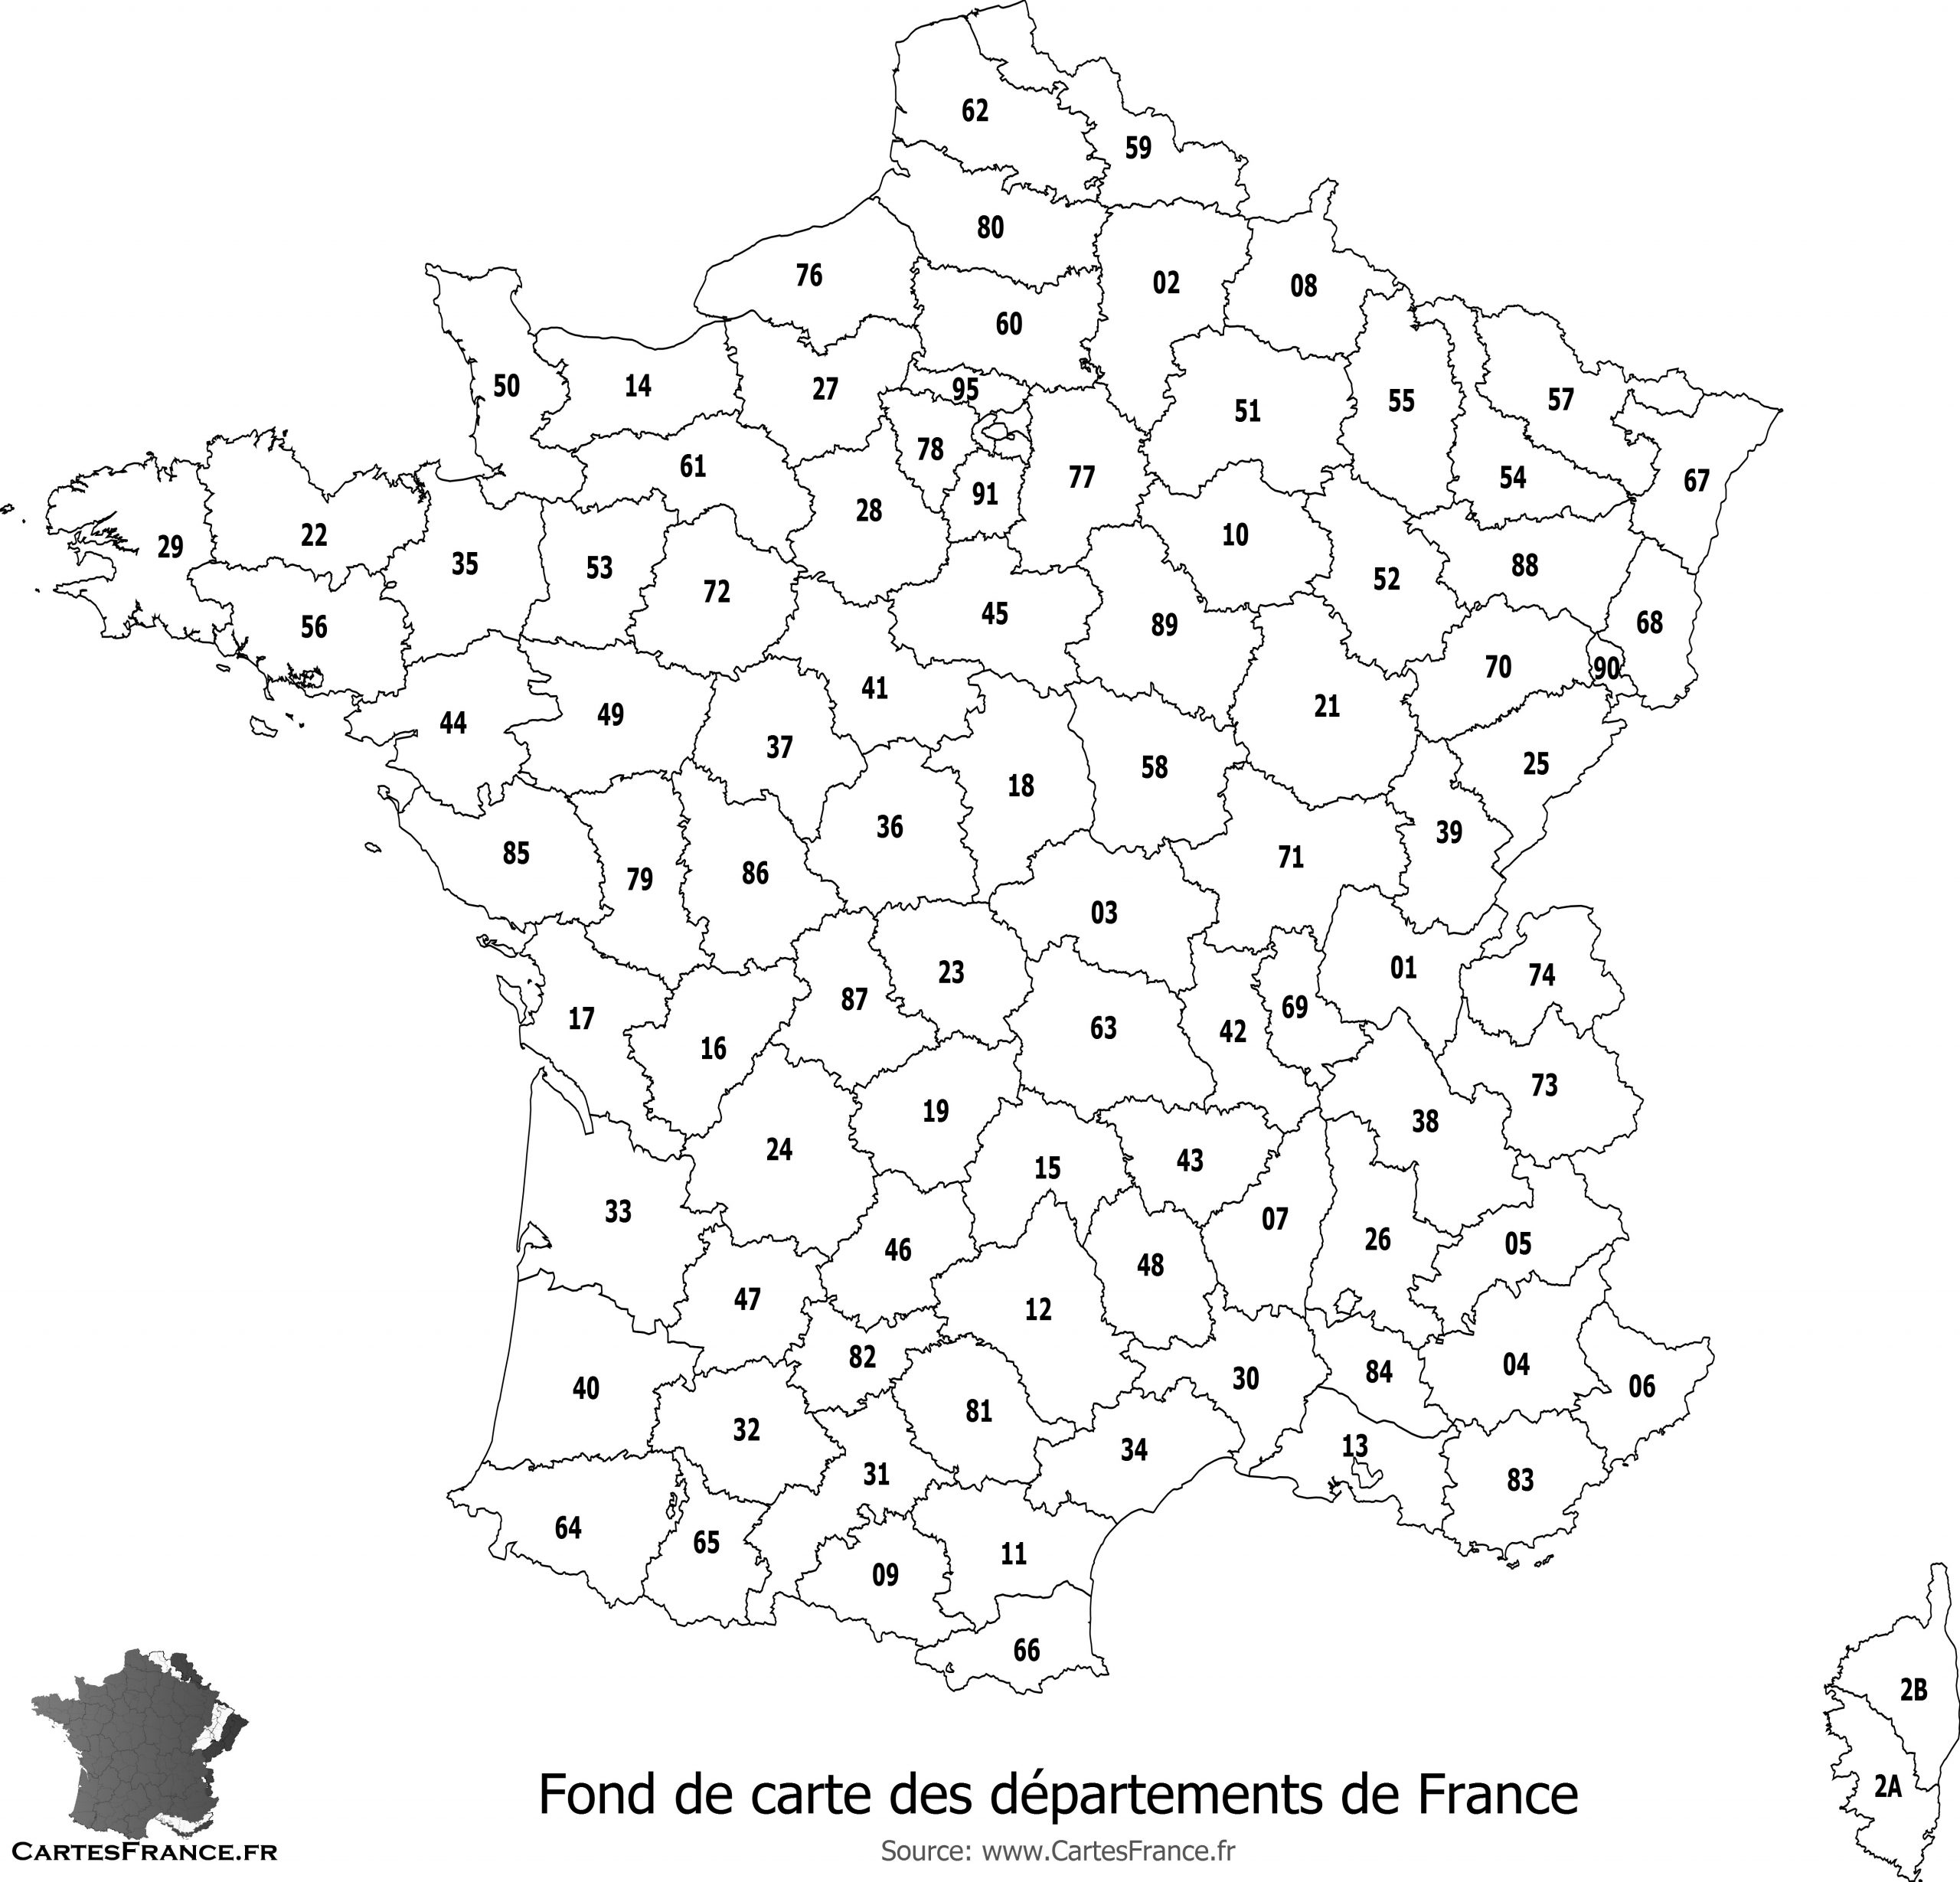 Fond De Carte Des Départements De France destiné Carte De France Des Départements